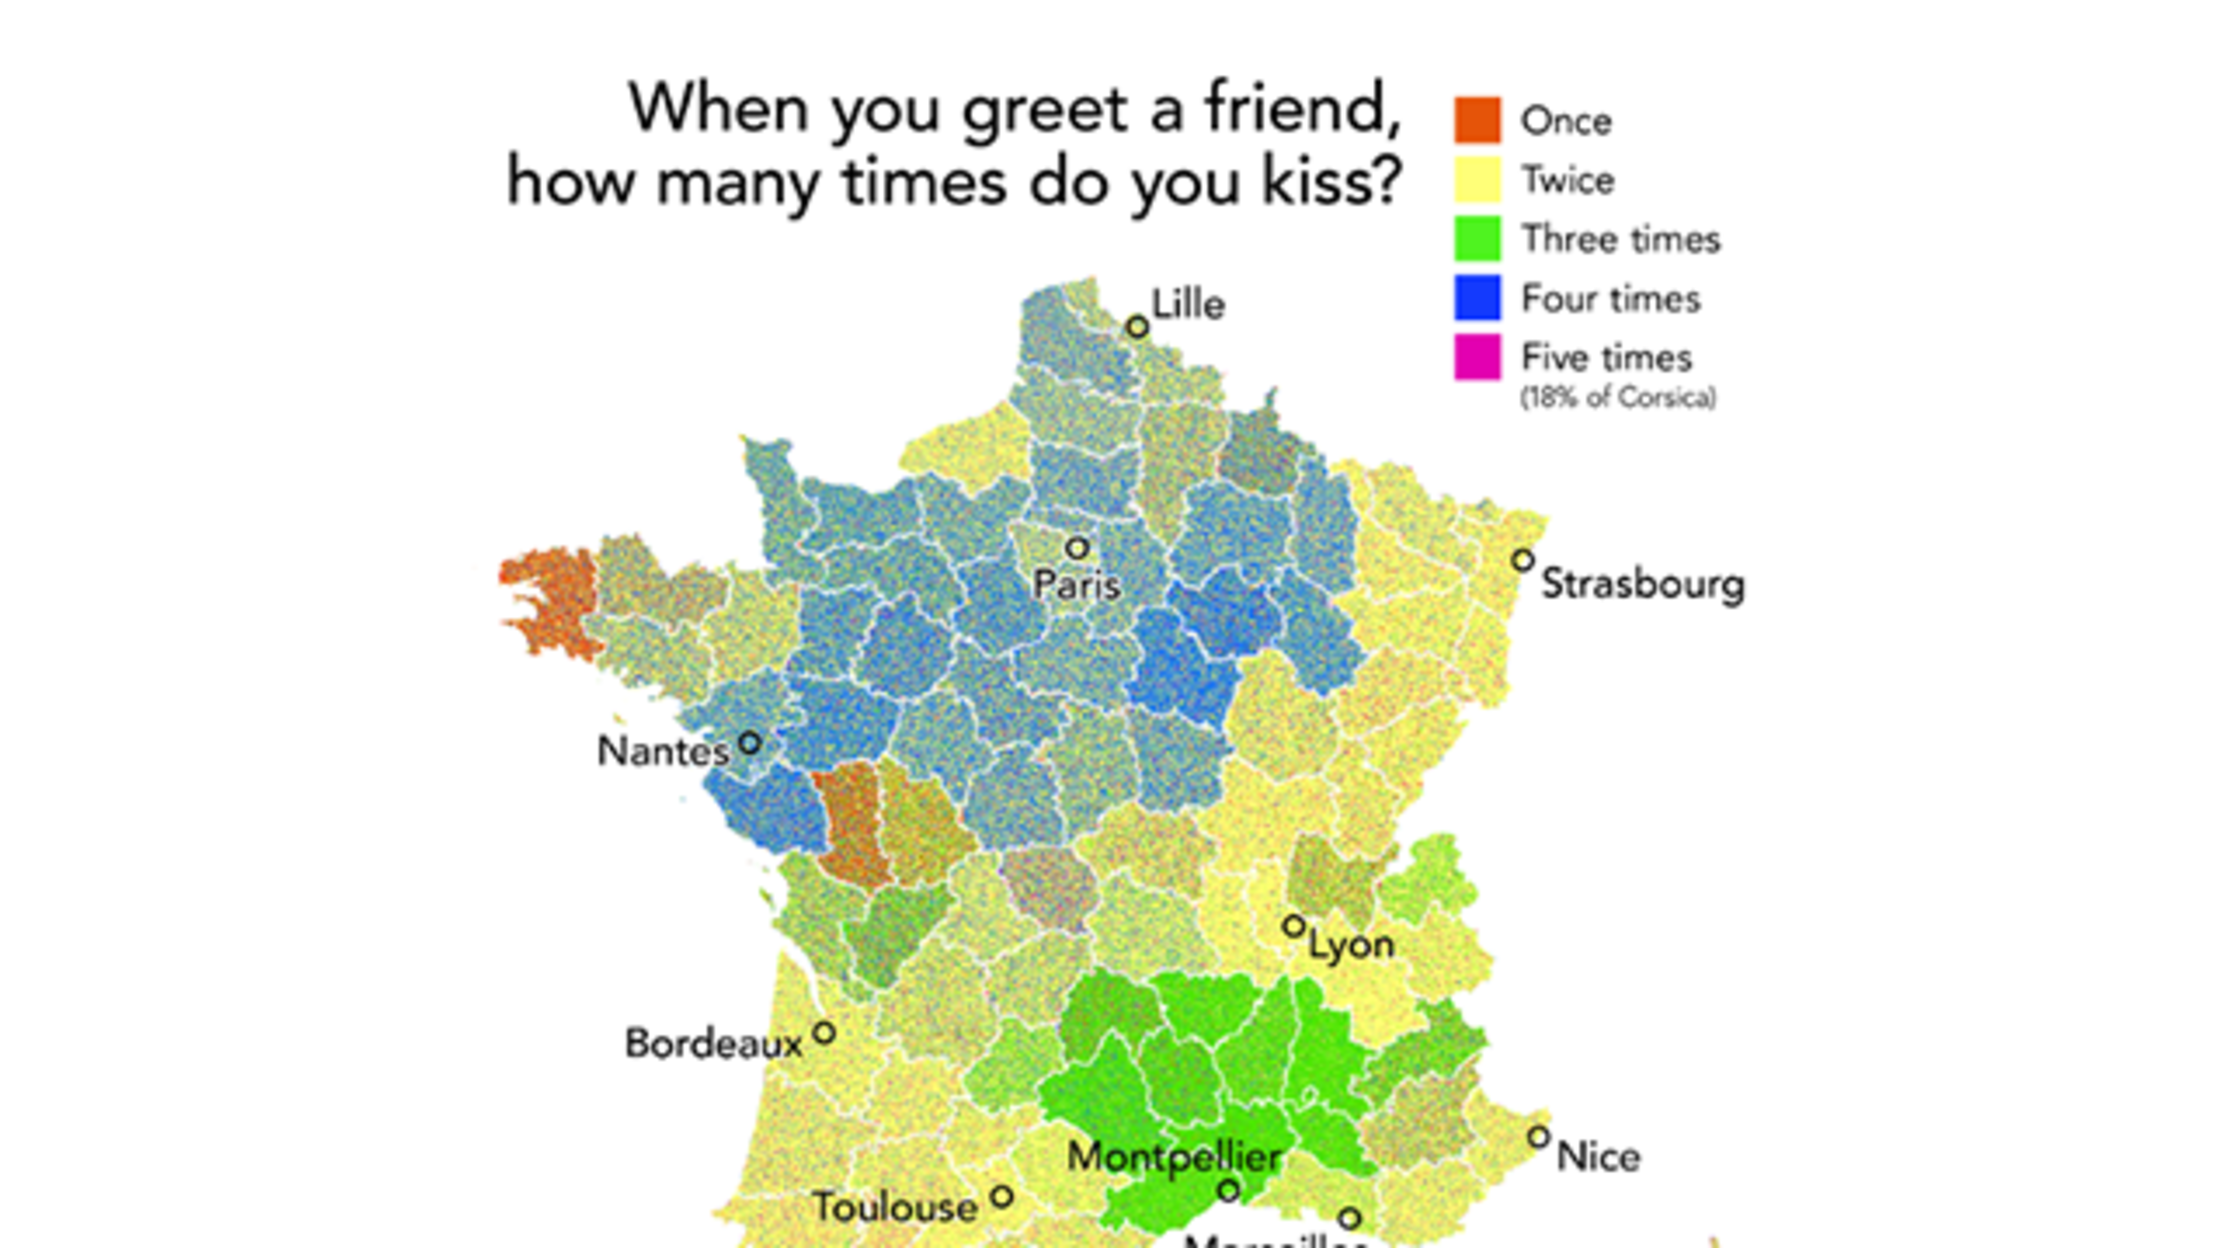 Montpellier On Map Of France.How Many Kisses Make A Proper Greeting In France Mapped Mental Floss